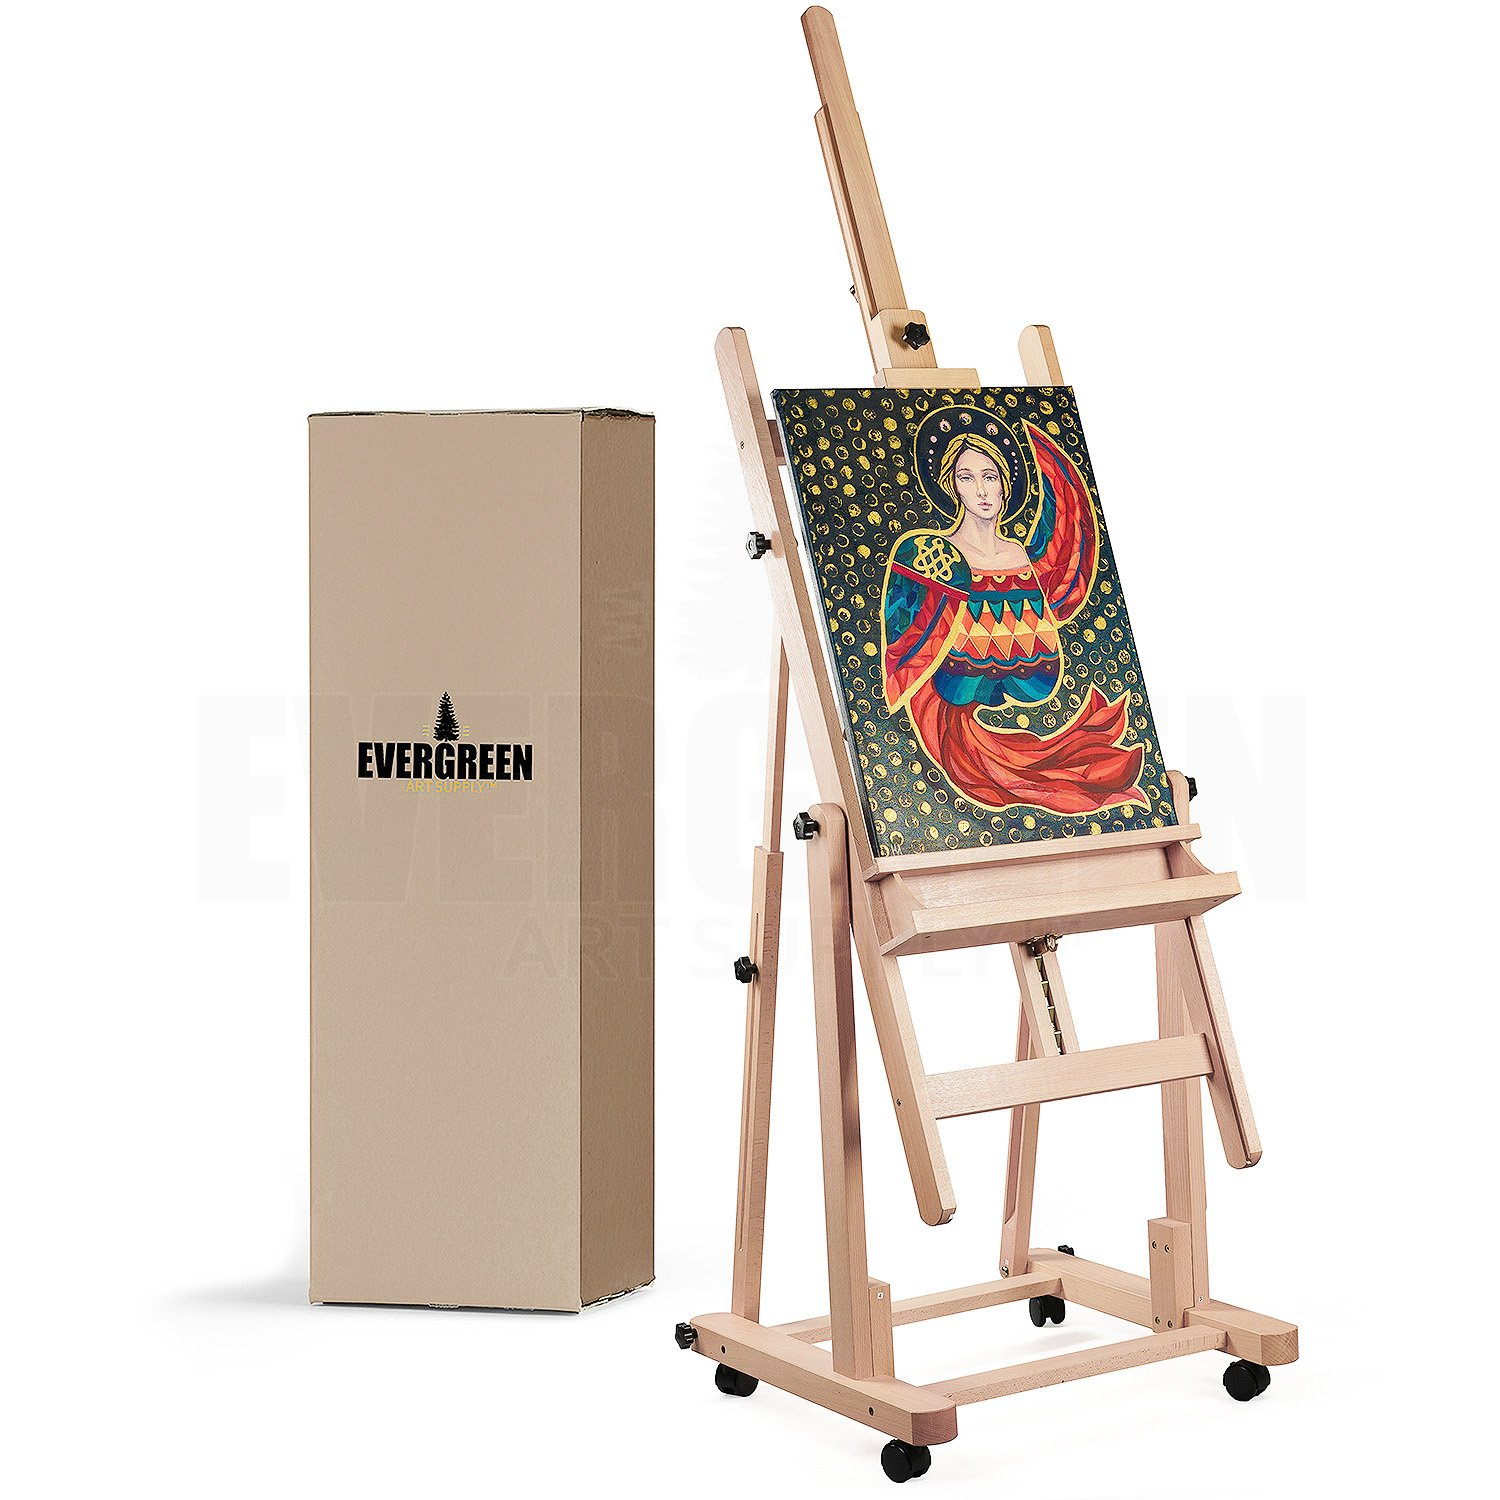 Heavy Duty H Frame Wooden Art Easel for Adults - Oil Painting Easel Stand Wood Artist Easels for Painting - Adjustable Standing Studio Floor Easel - Professional Art Supplies, Large Canvas up to 90''